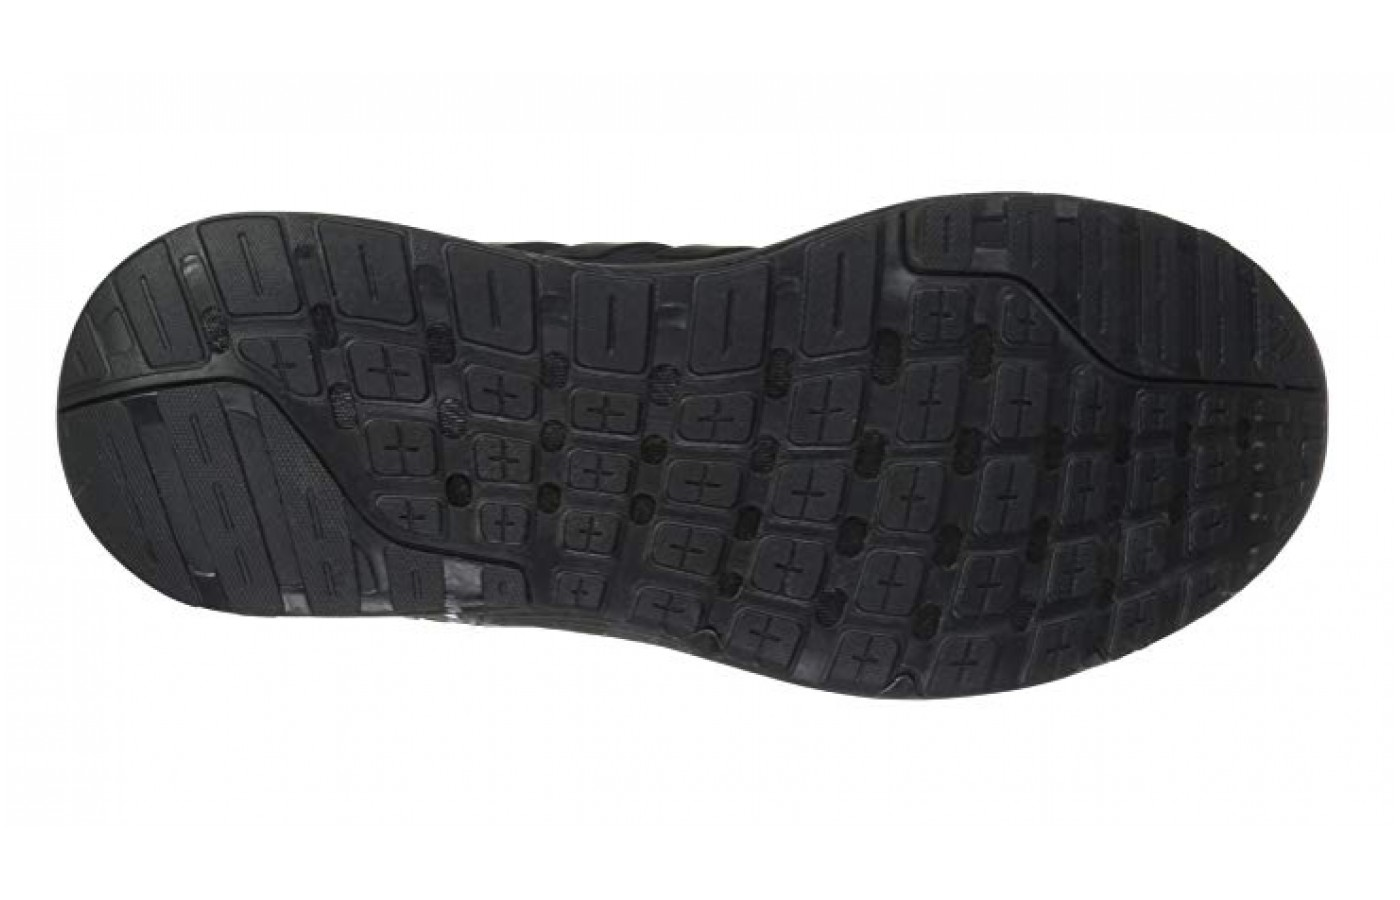 Soft rubber sole traction is great on smooth surfaces and for ultimate flexibility.